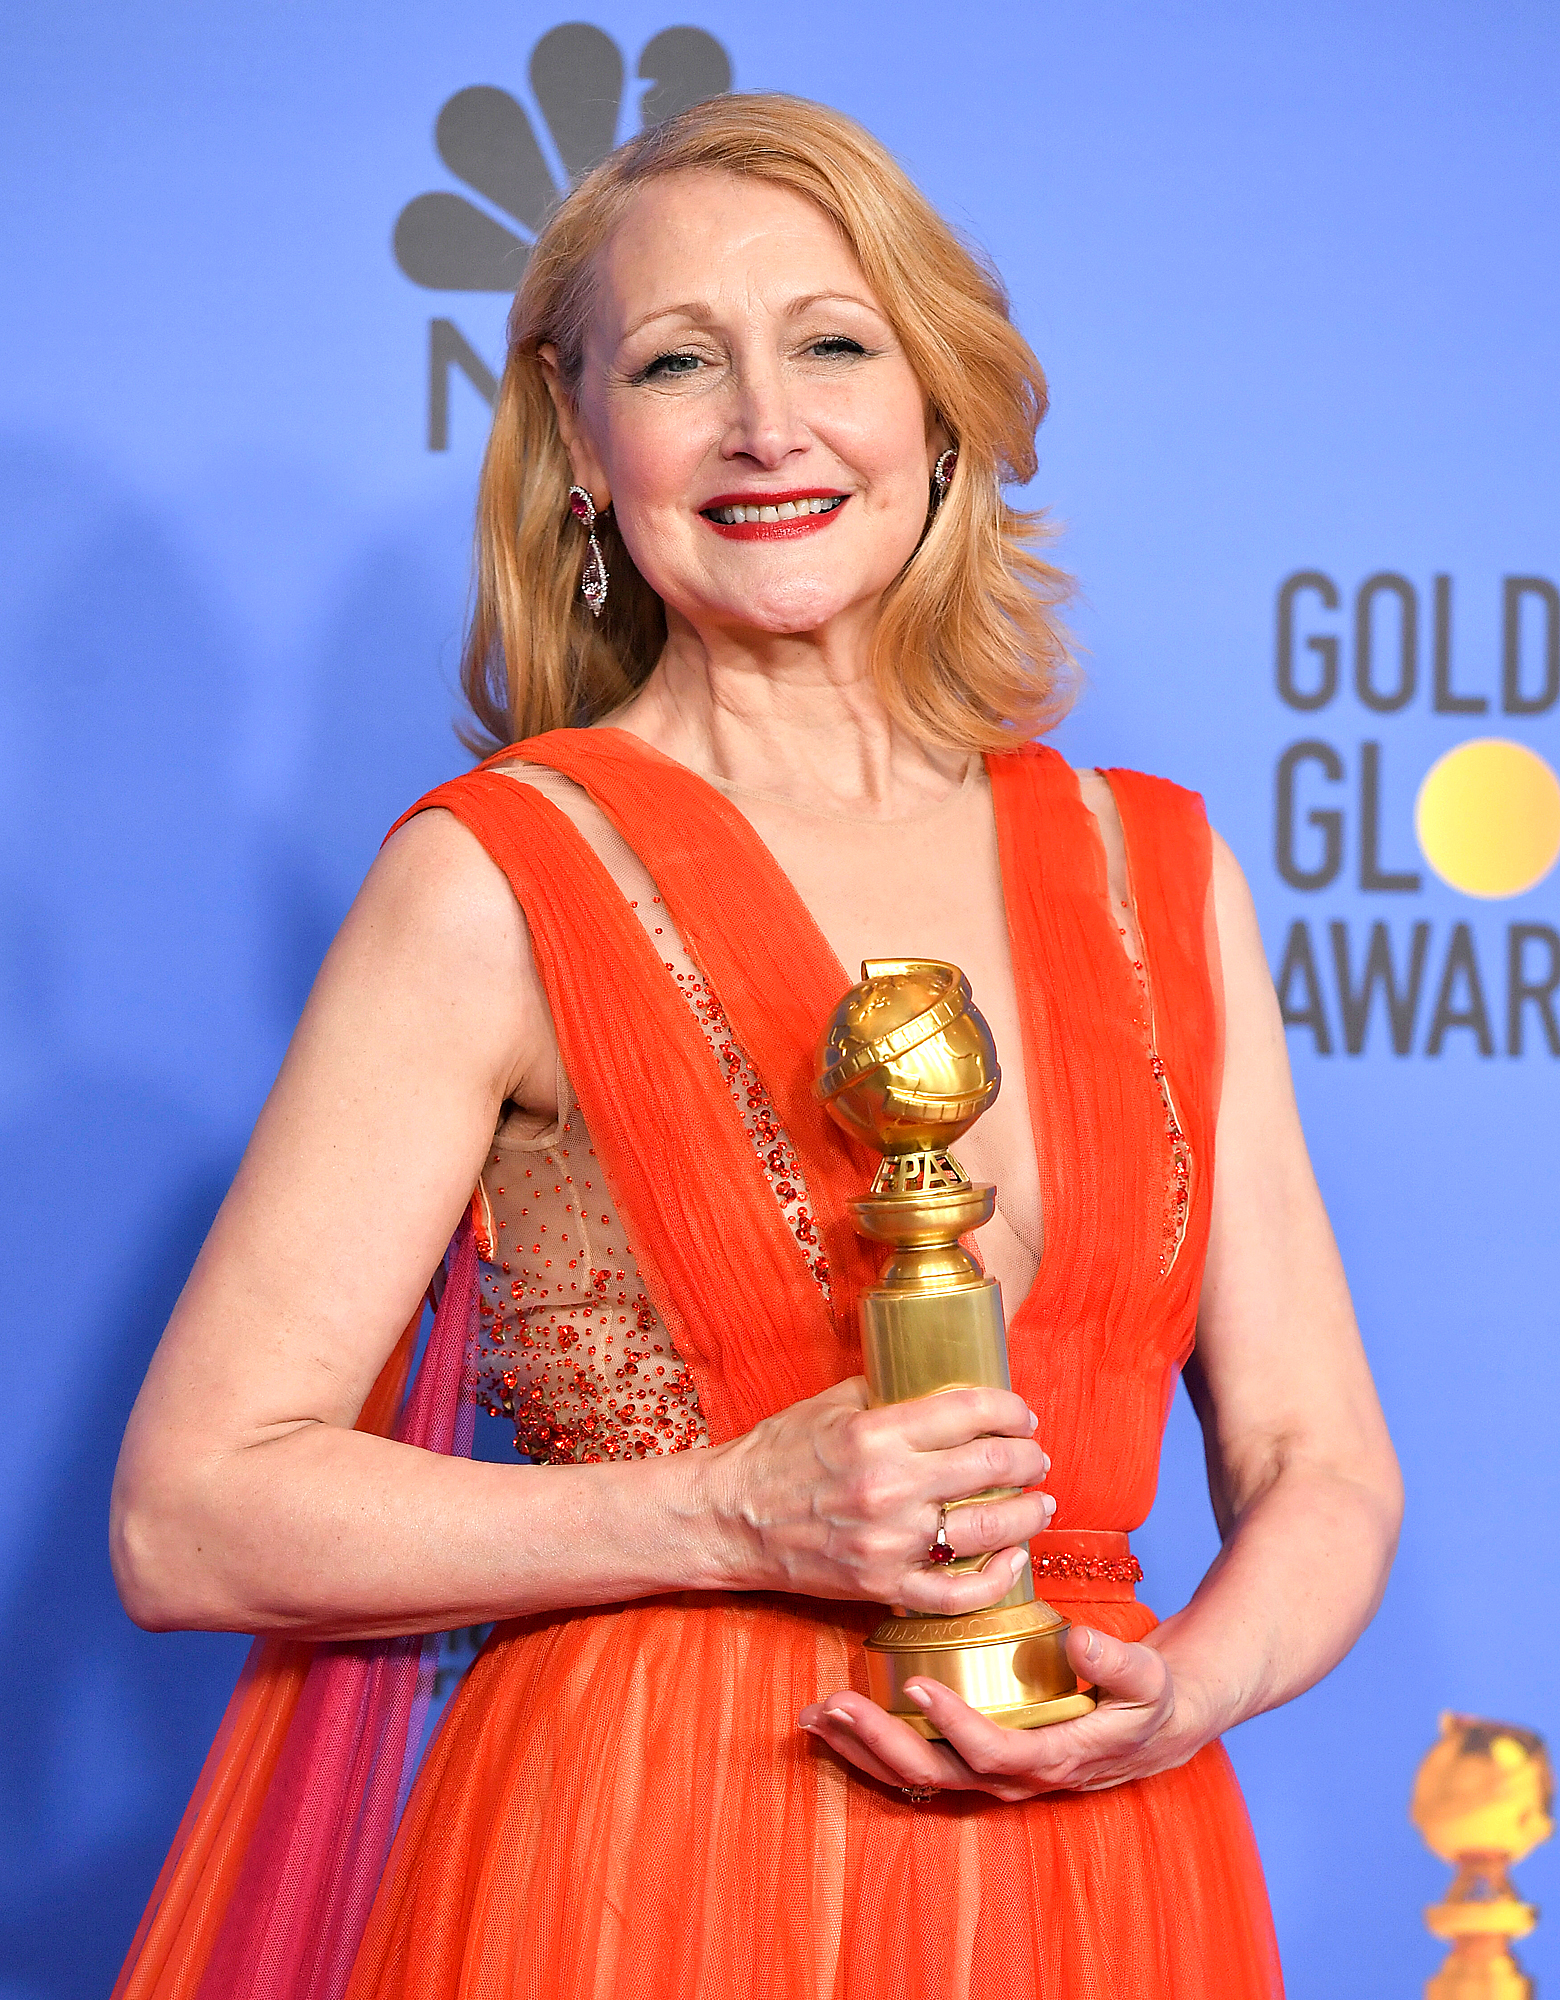 Patricia Clarkson Was Superstitious Before Golden Globes Win: 'I Won't Let Anybody Say Anything'